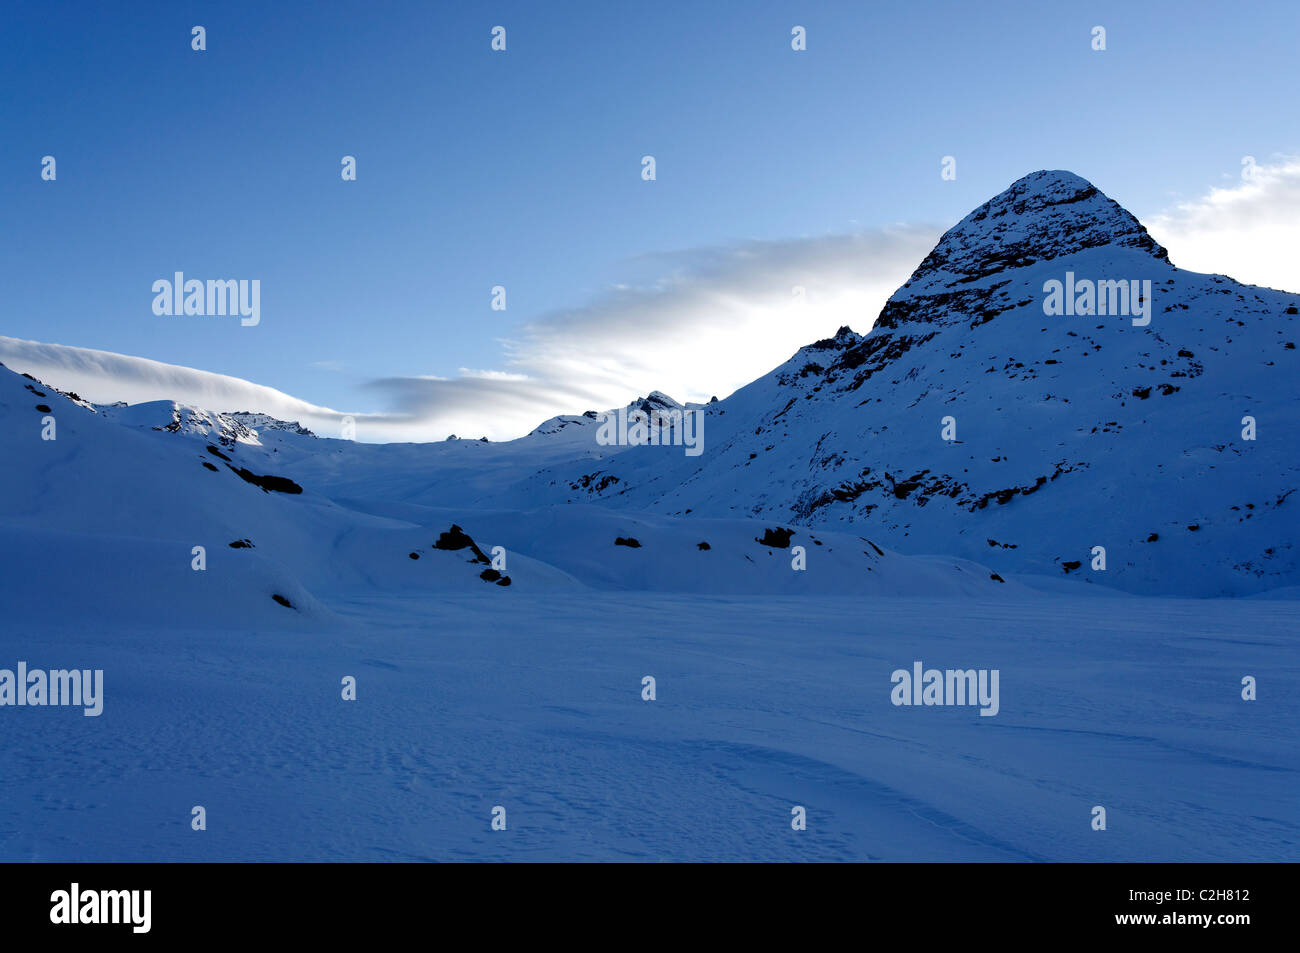 Early morning scenery whilst ski touring in the Haute Maurienne in the French Alps. Stock Photo